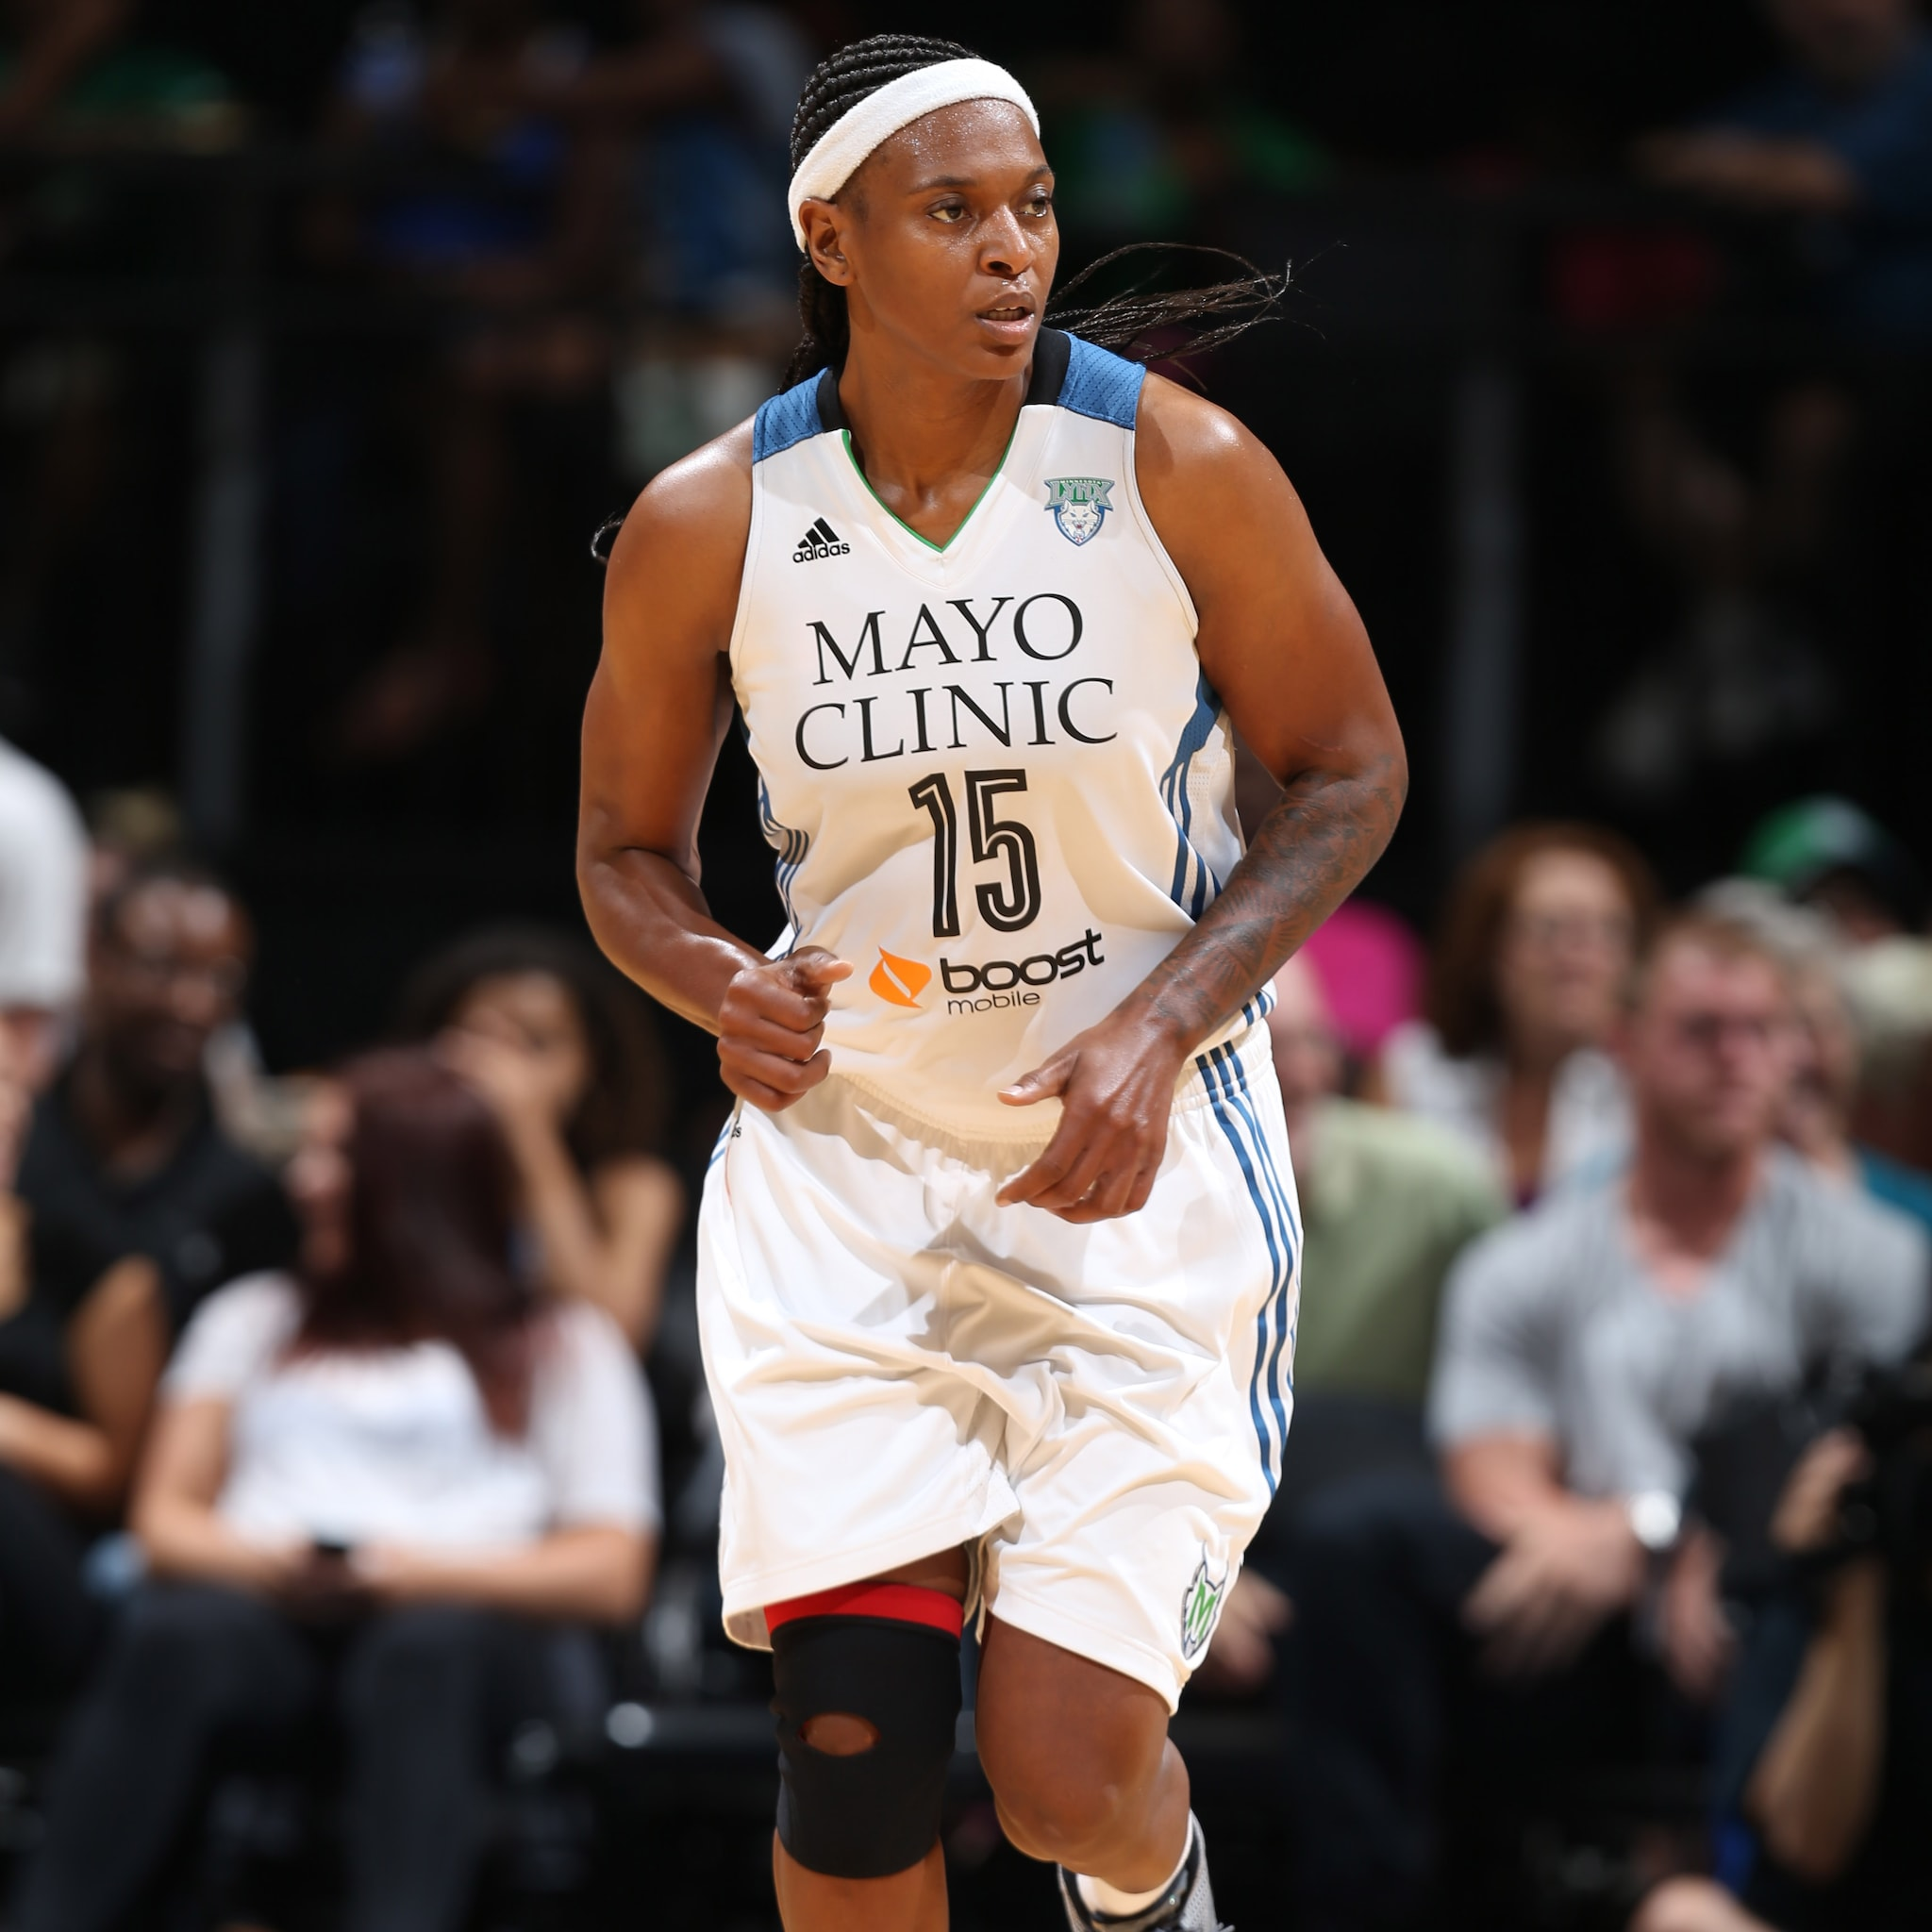 Lynx center Asjha Jones had her best game as a member of the Lynx, finishing with 12 points and 10 rebounds.